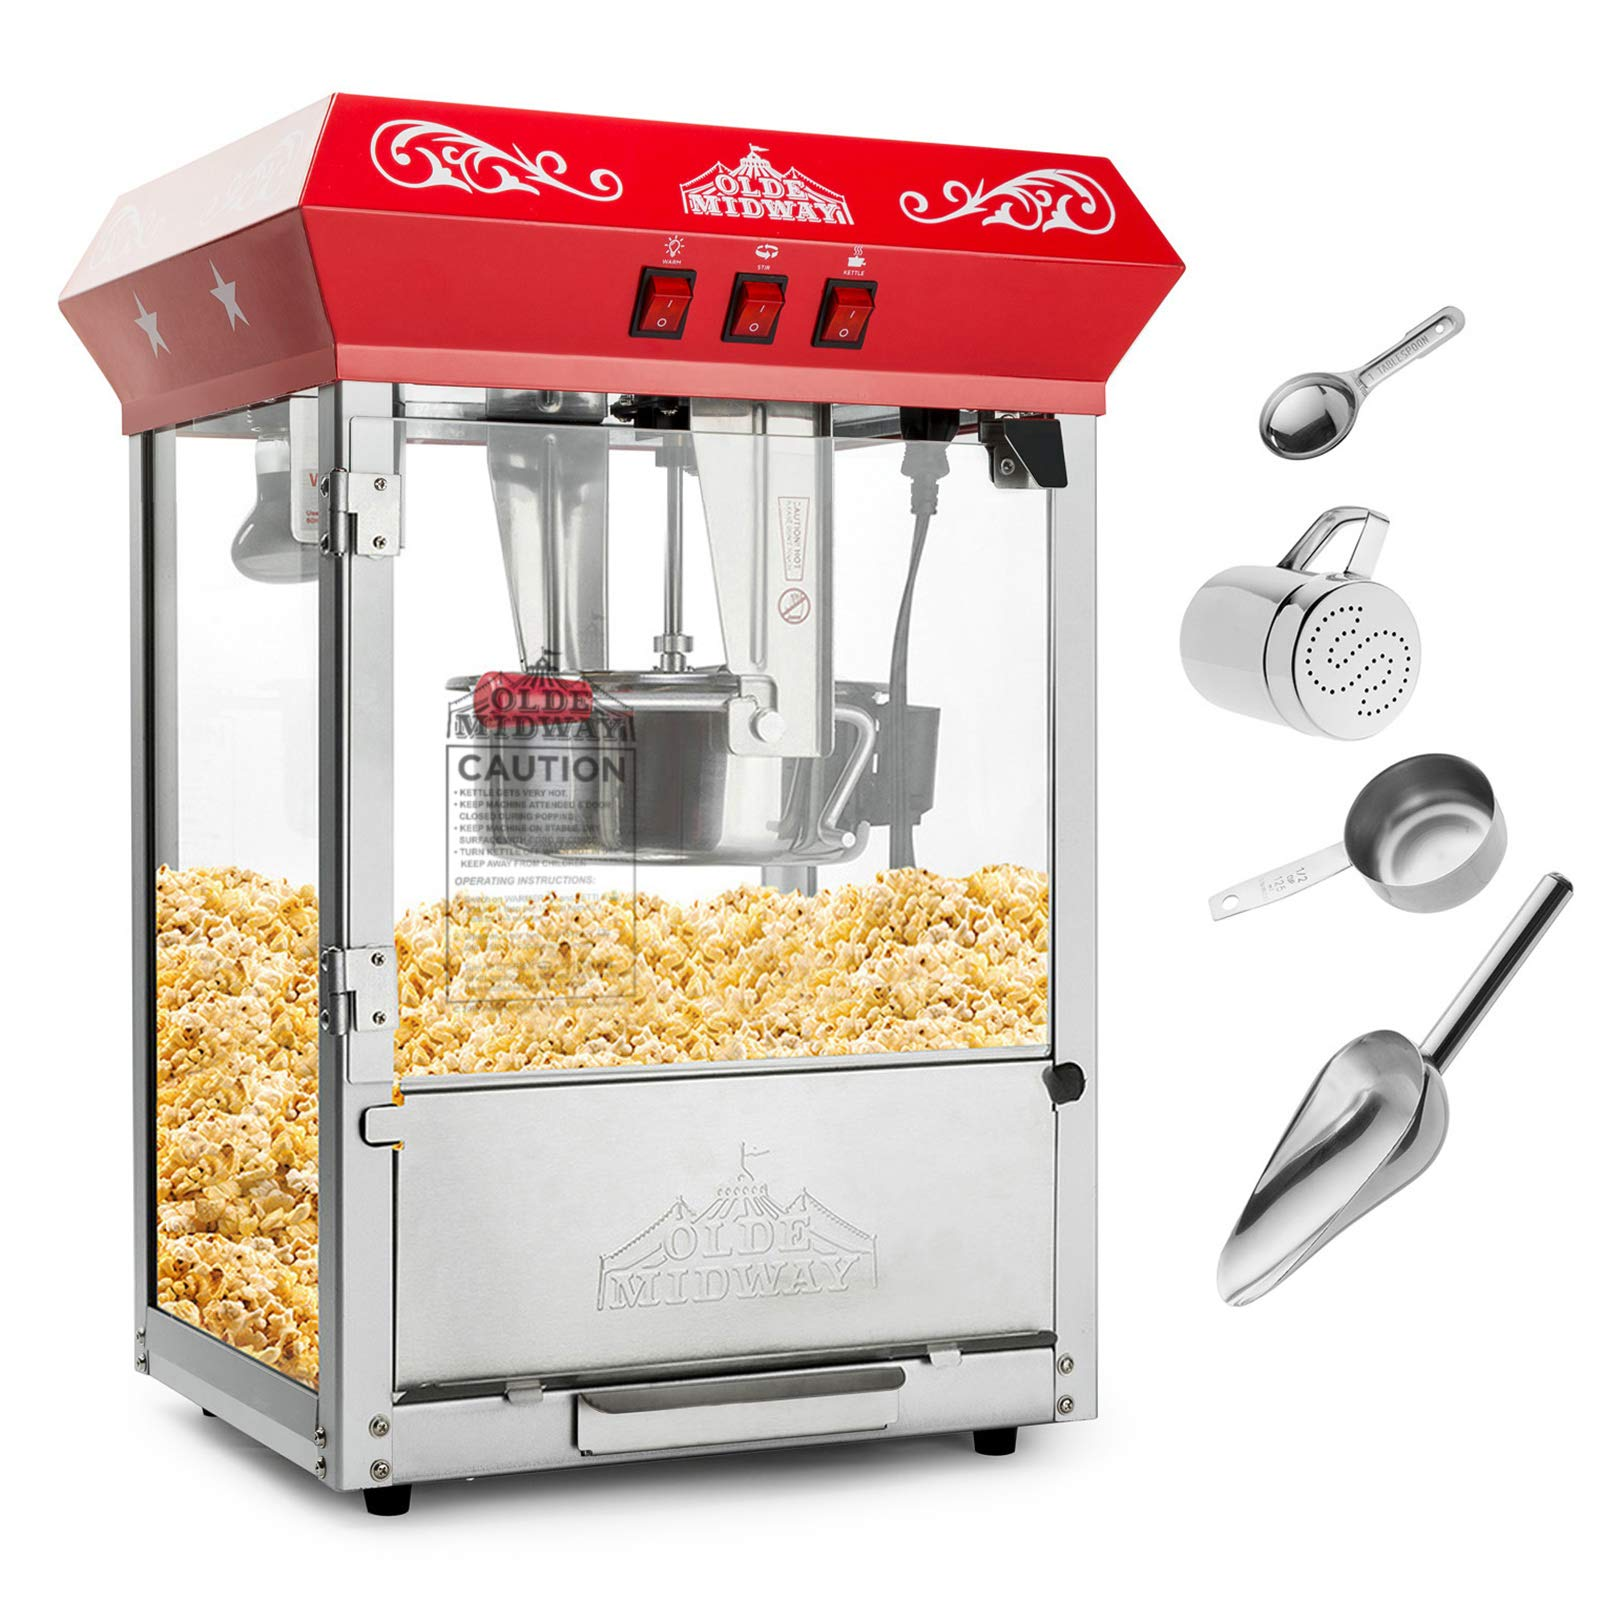 Olde Midway Bar Style Popcorn Machine Maker Popper with 10-Ounce Kettle - Red by Olde Midway